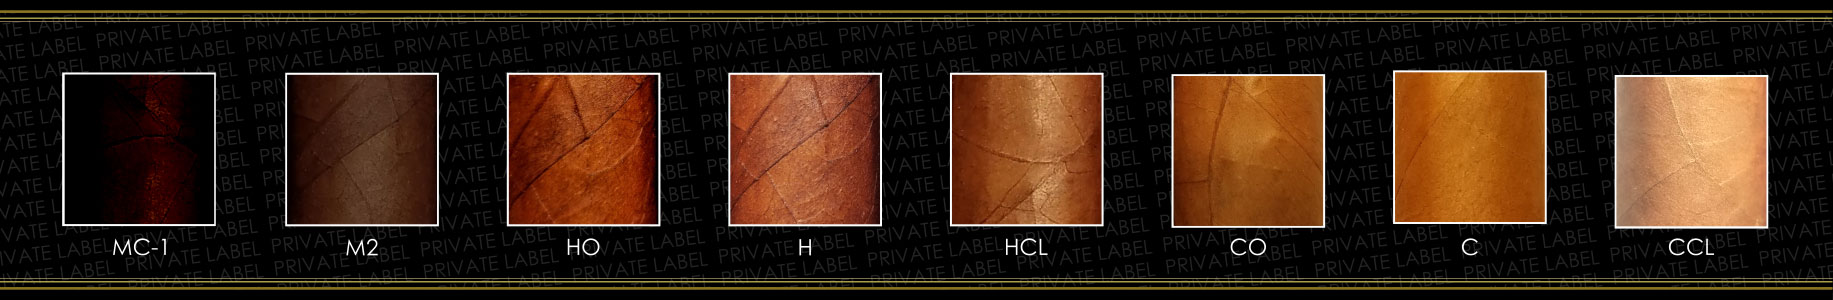 Wrap Cigars of Private Label